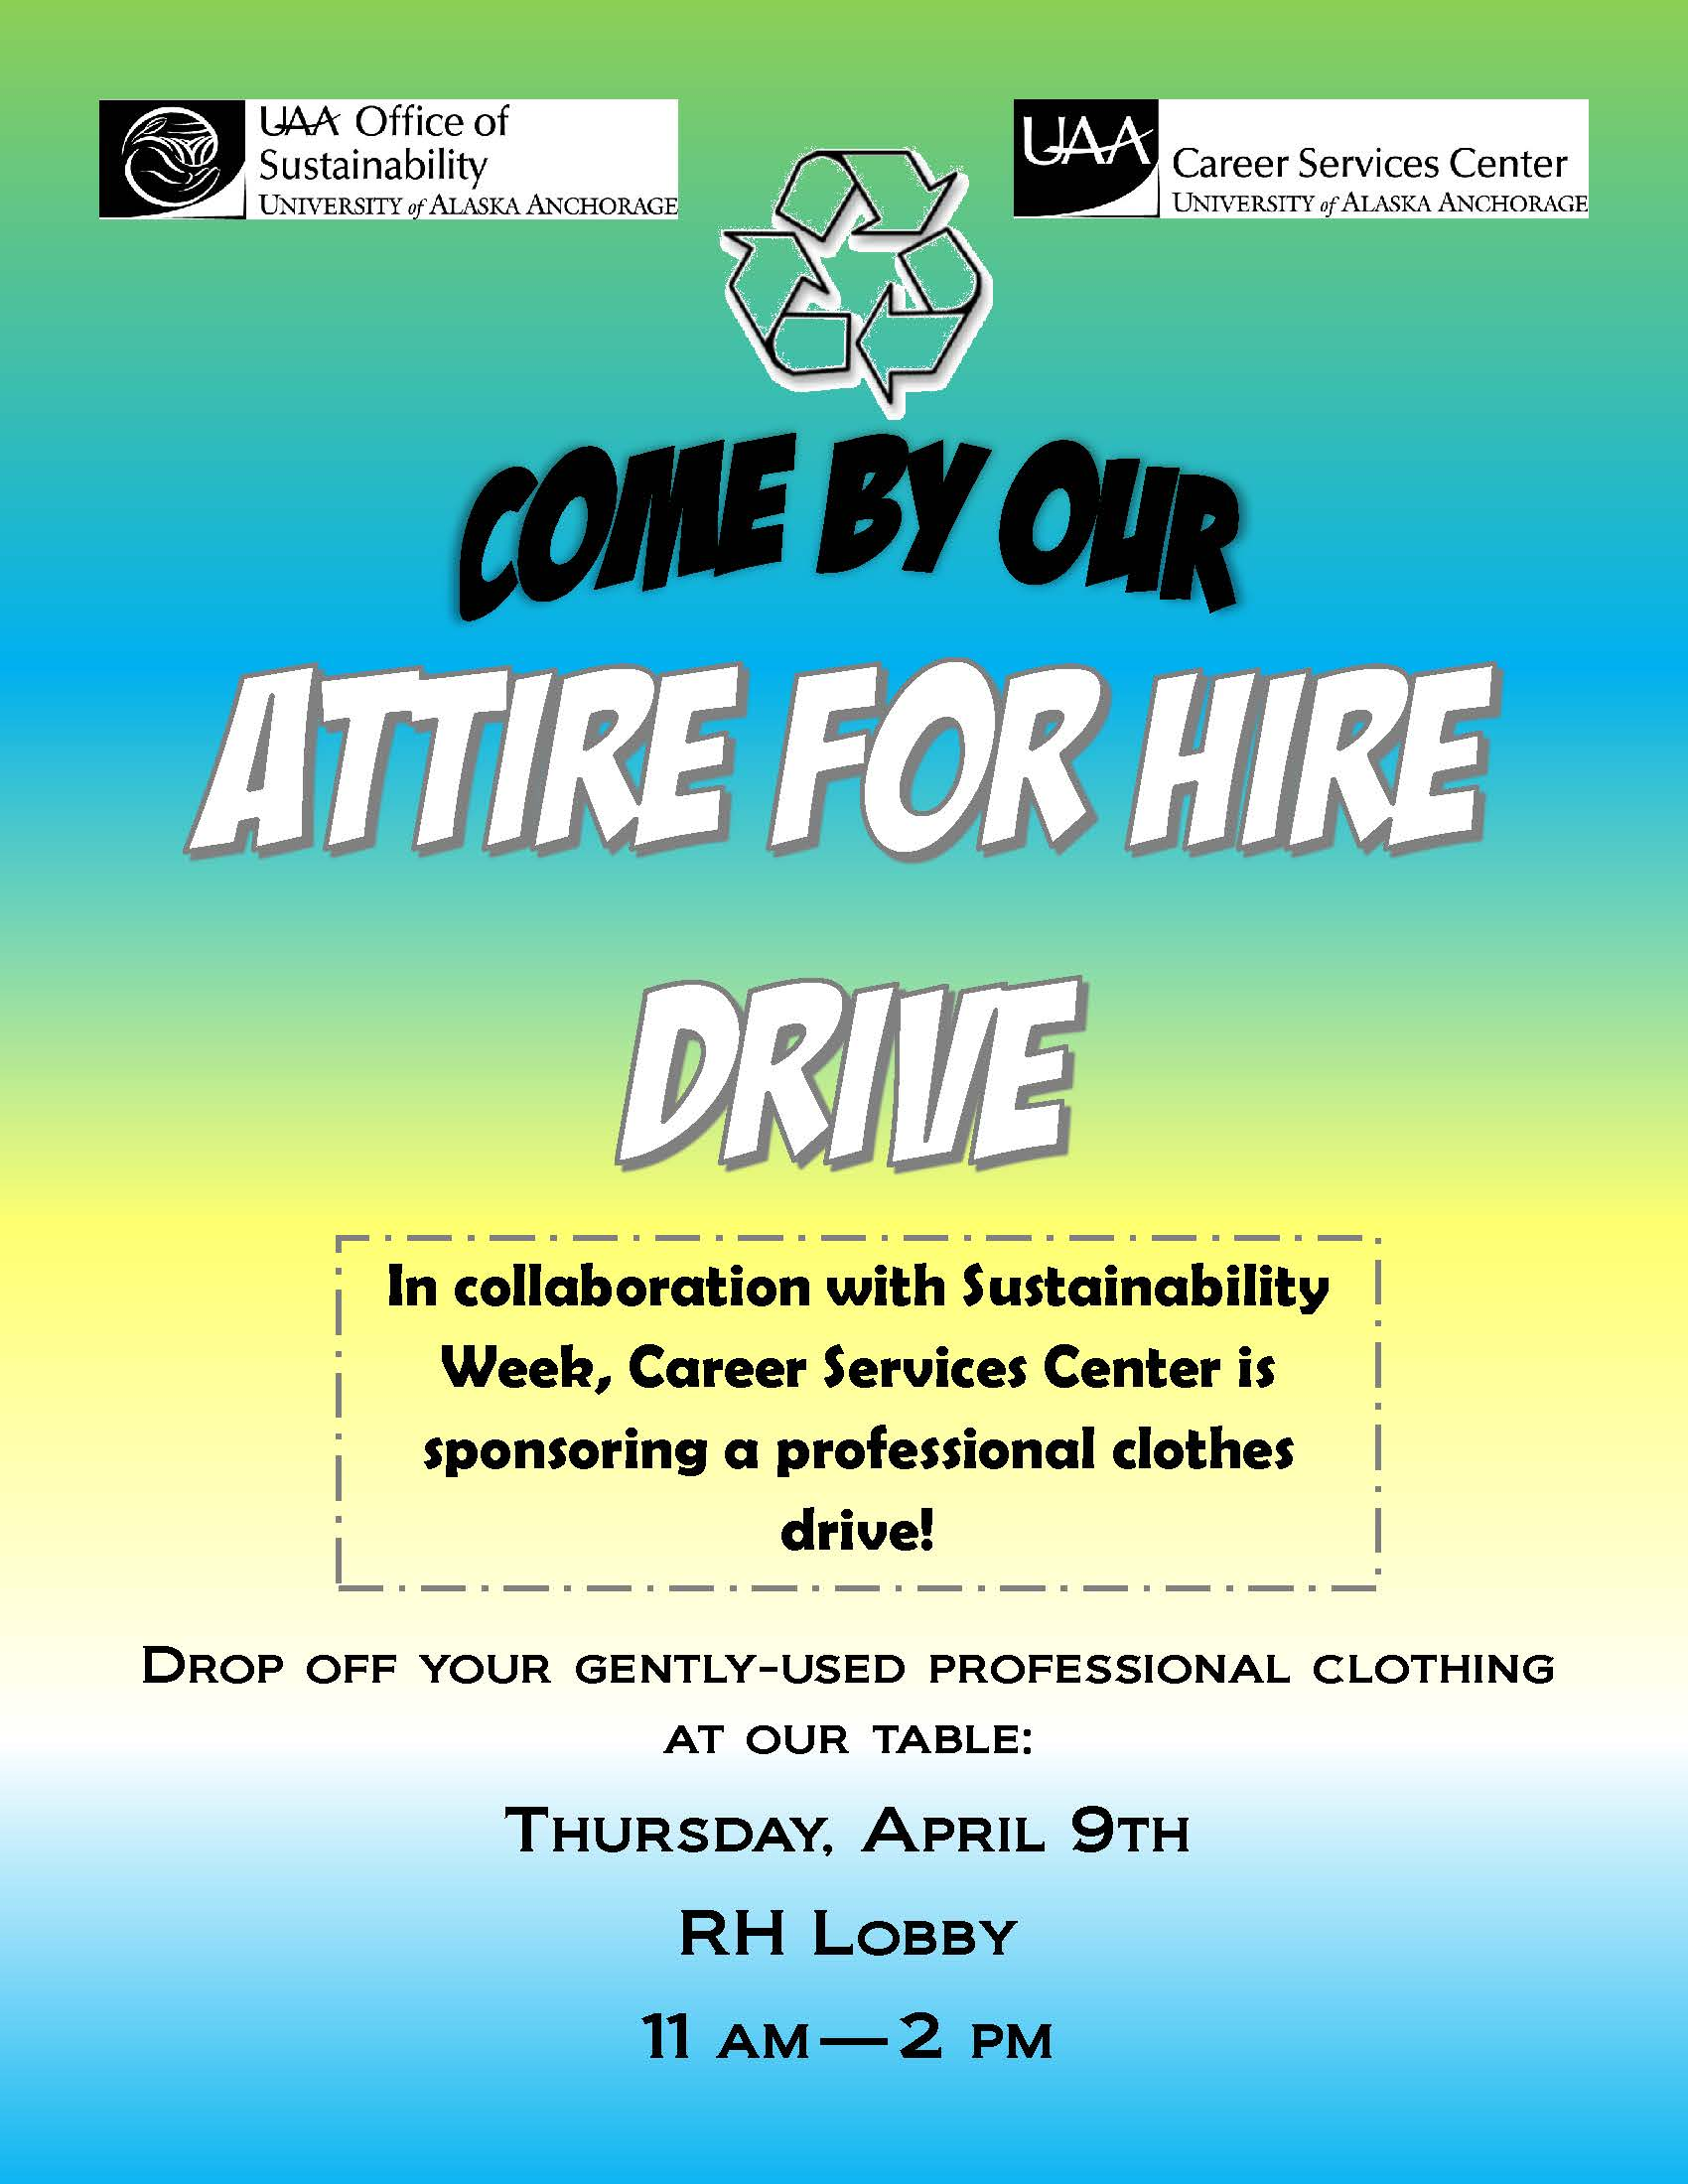 UAA Attire for Hire Clothing Drive